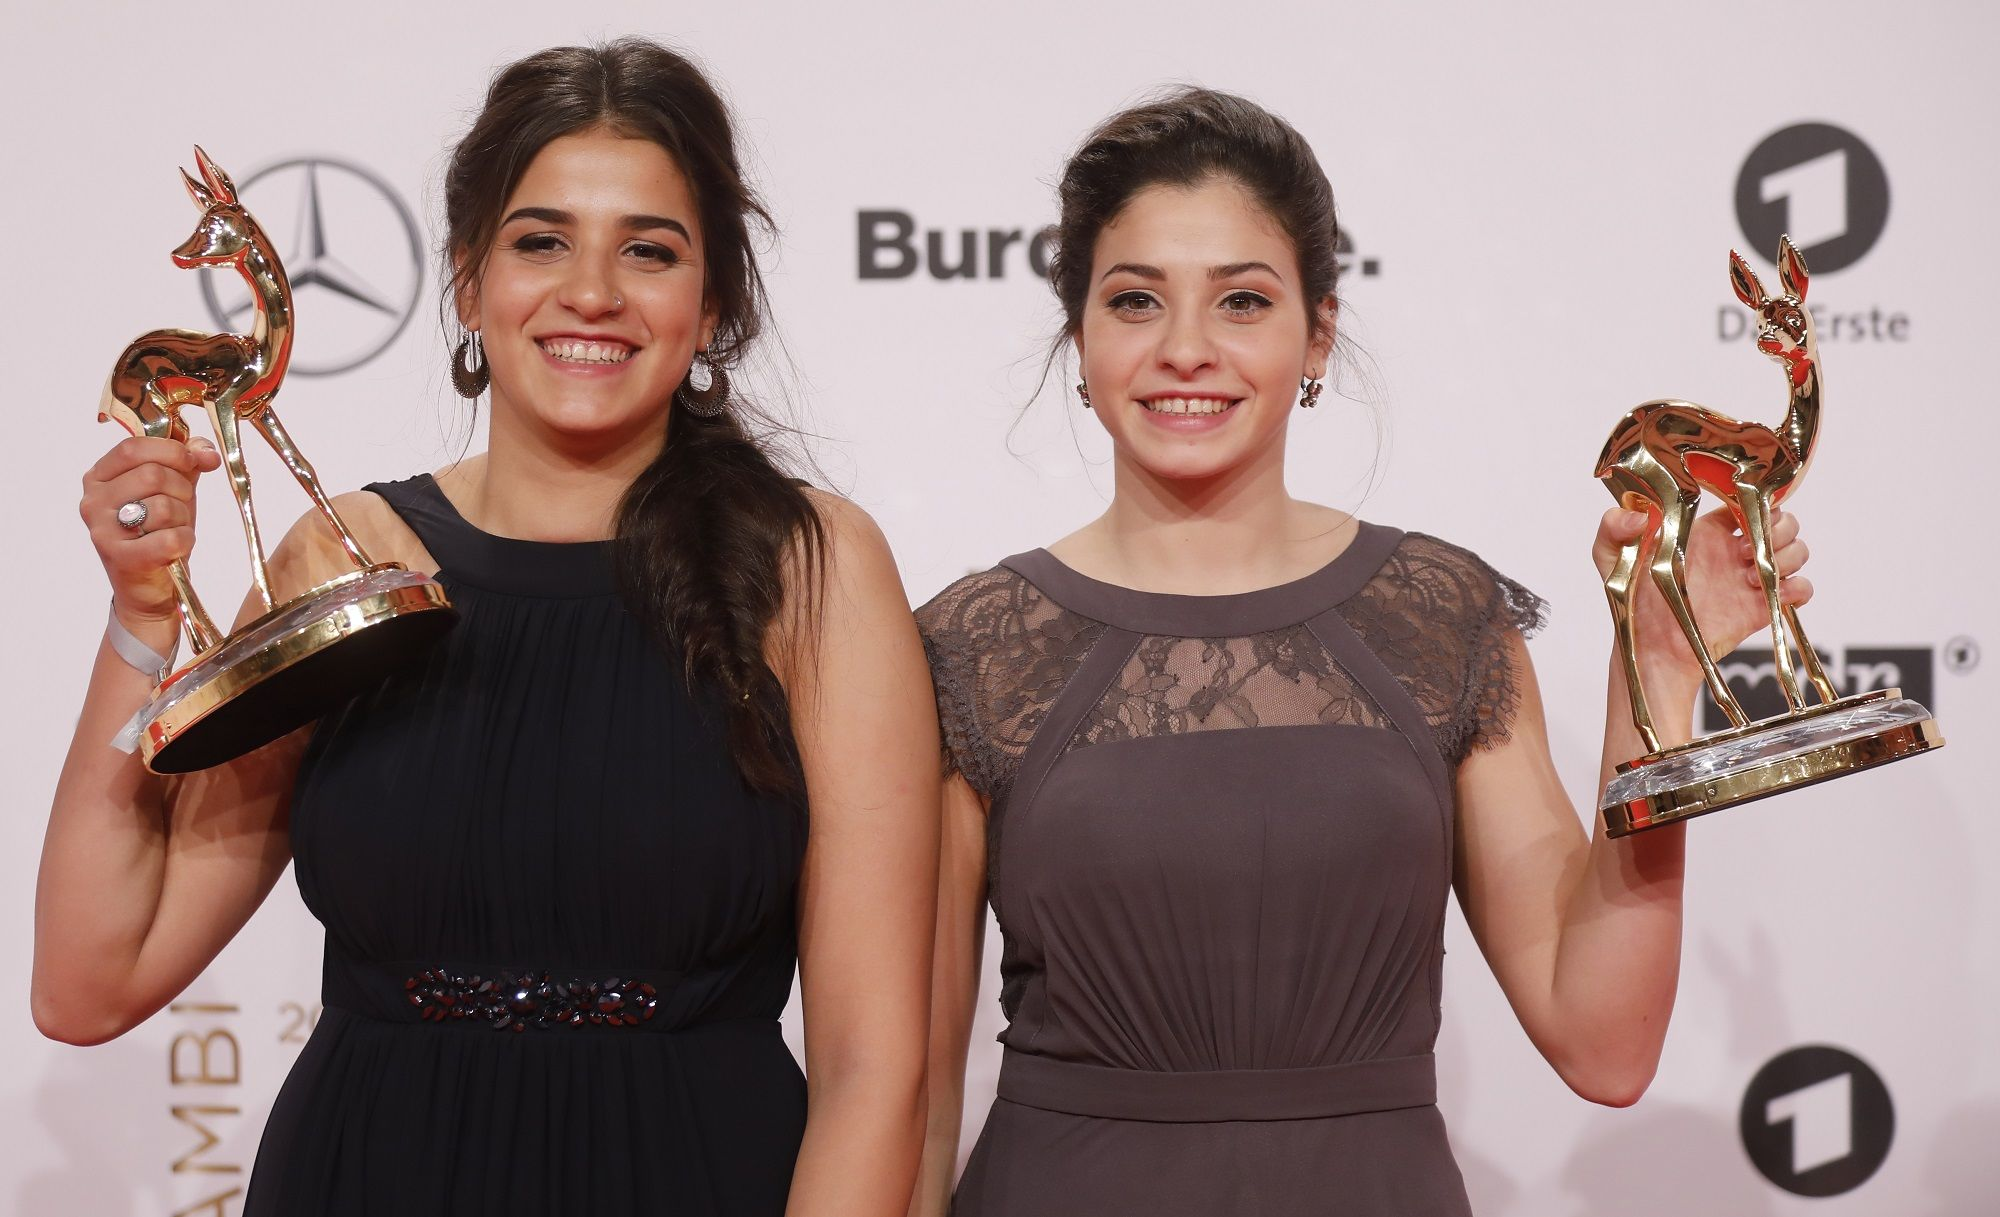 Syrian refugees and swimmers Yusra and Sarah Mardini pose for photographers with the trophy at the Bambi awards on November 17, 2016 in Berlin.  The Bambis are the main German media awards.  / AFP PHOTO / Axel SCHMIDT